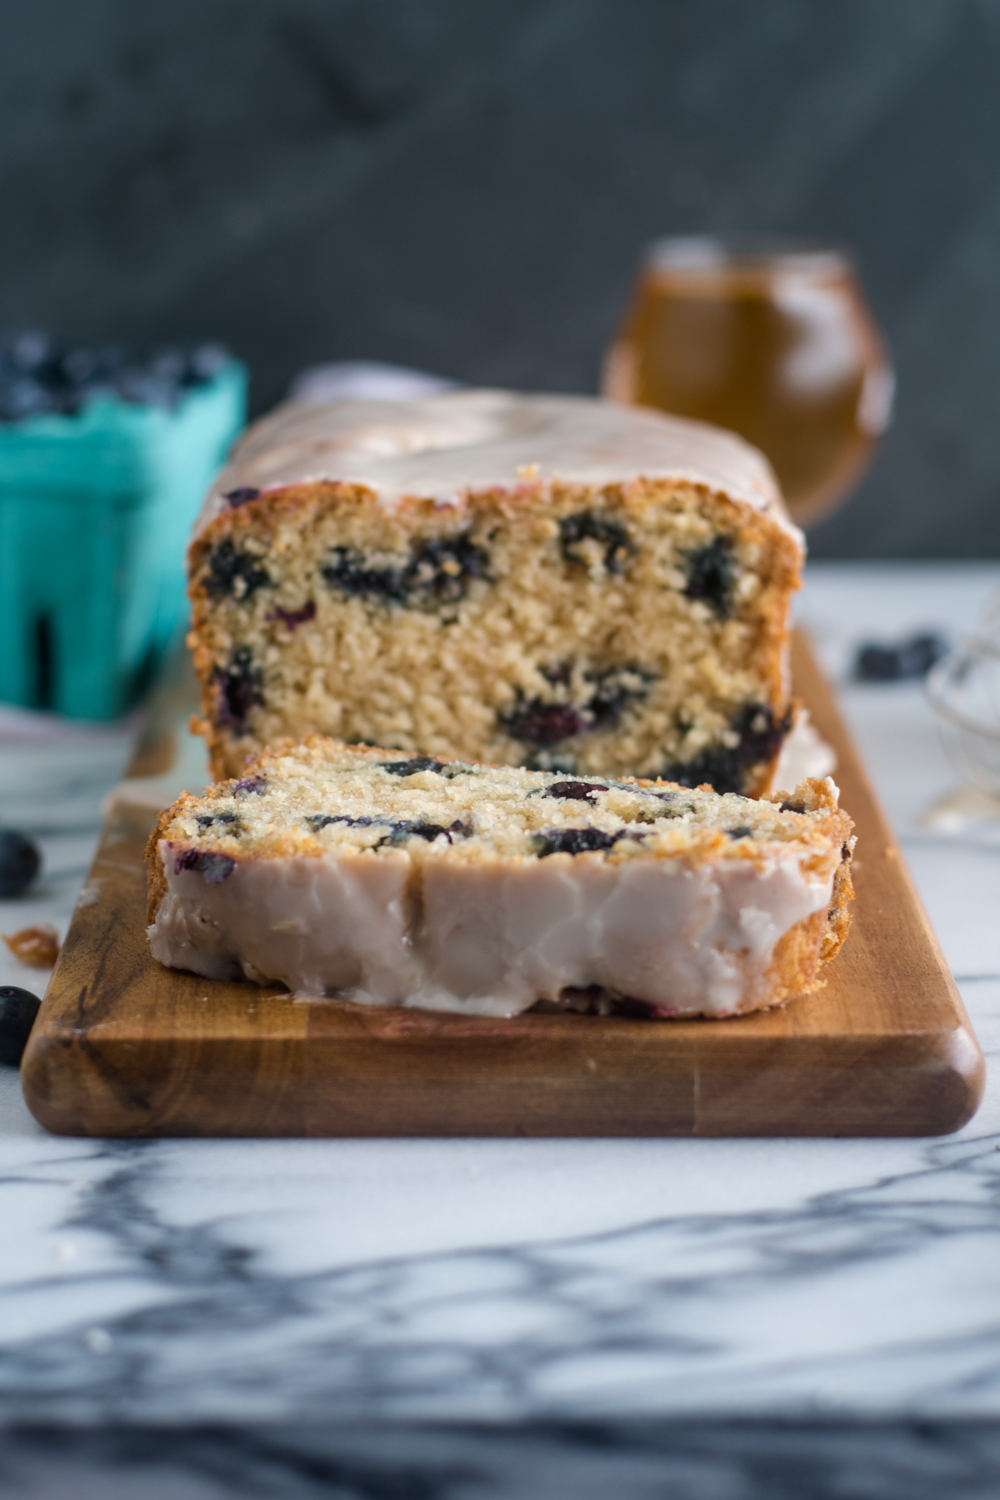 Blueberry golden summer ale creates a light and tender blueberry lemon beer bread. Lemon zest and fresh lemon juice adds a bright citrus note that pairs beautiful with the blueberries.